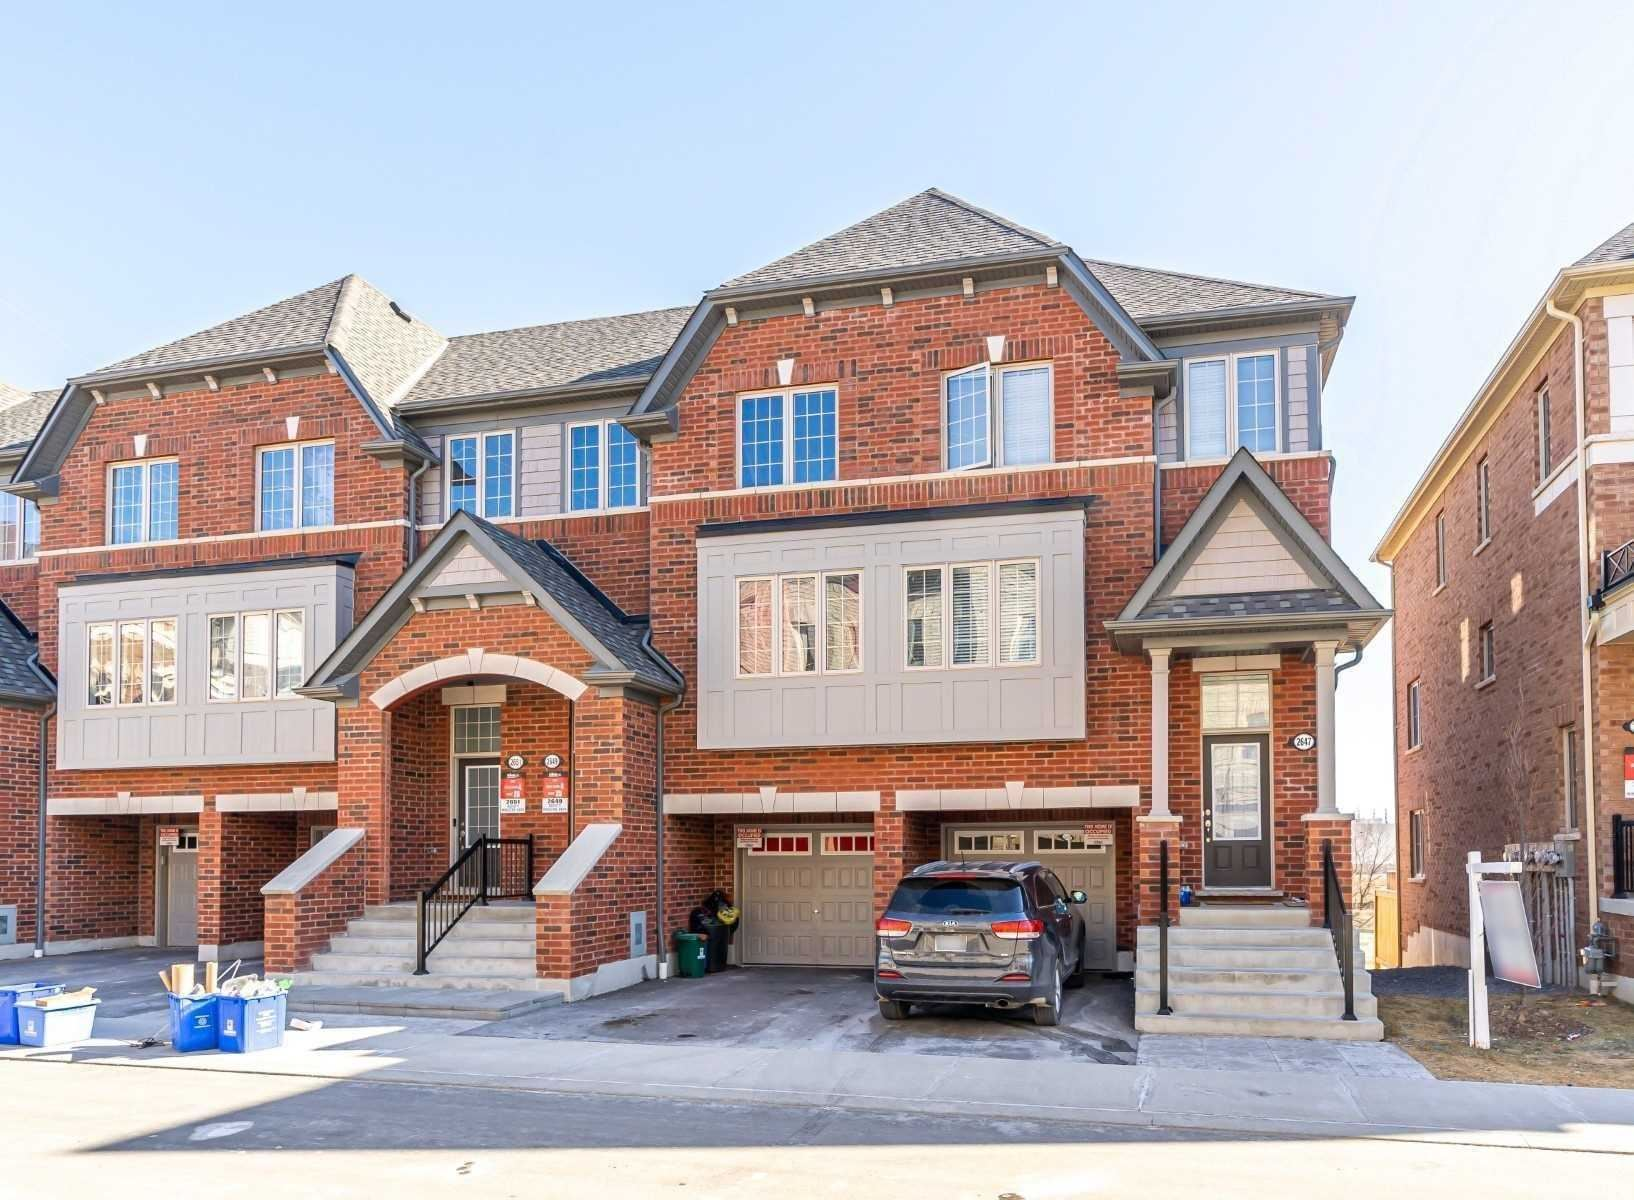 2647 Deputy Minister Path, Oshawa, ON L1L 0M7 - MLS#: E5175123